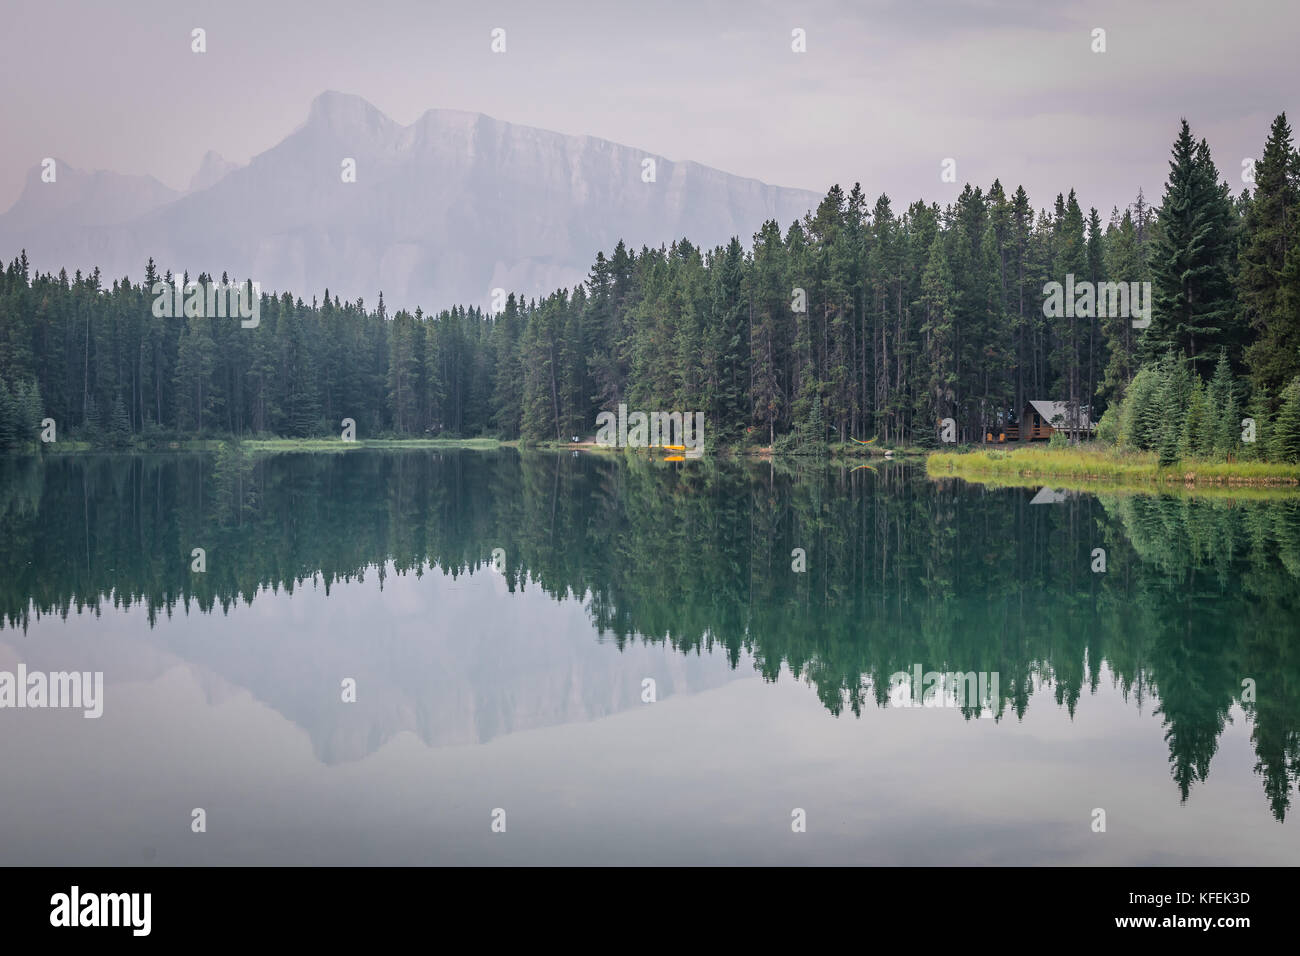 Cabin in front of Mount Rundle at Two Jack Lake in Alberta, Cana - Stock Image